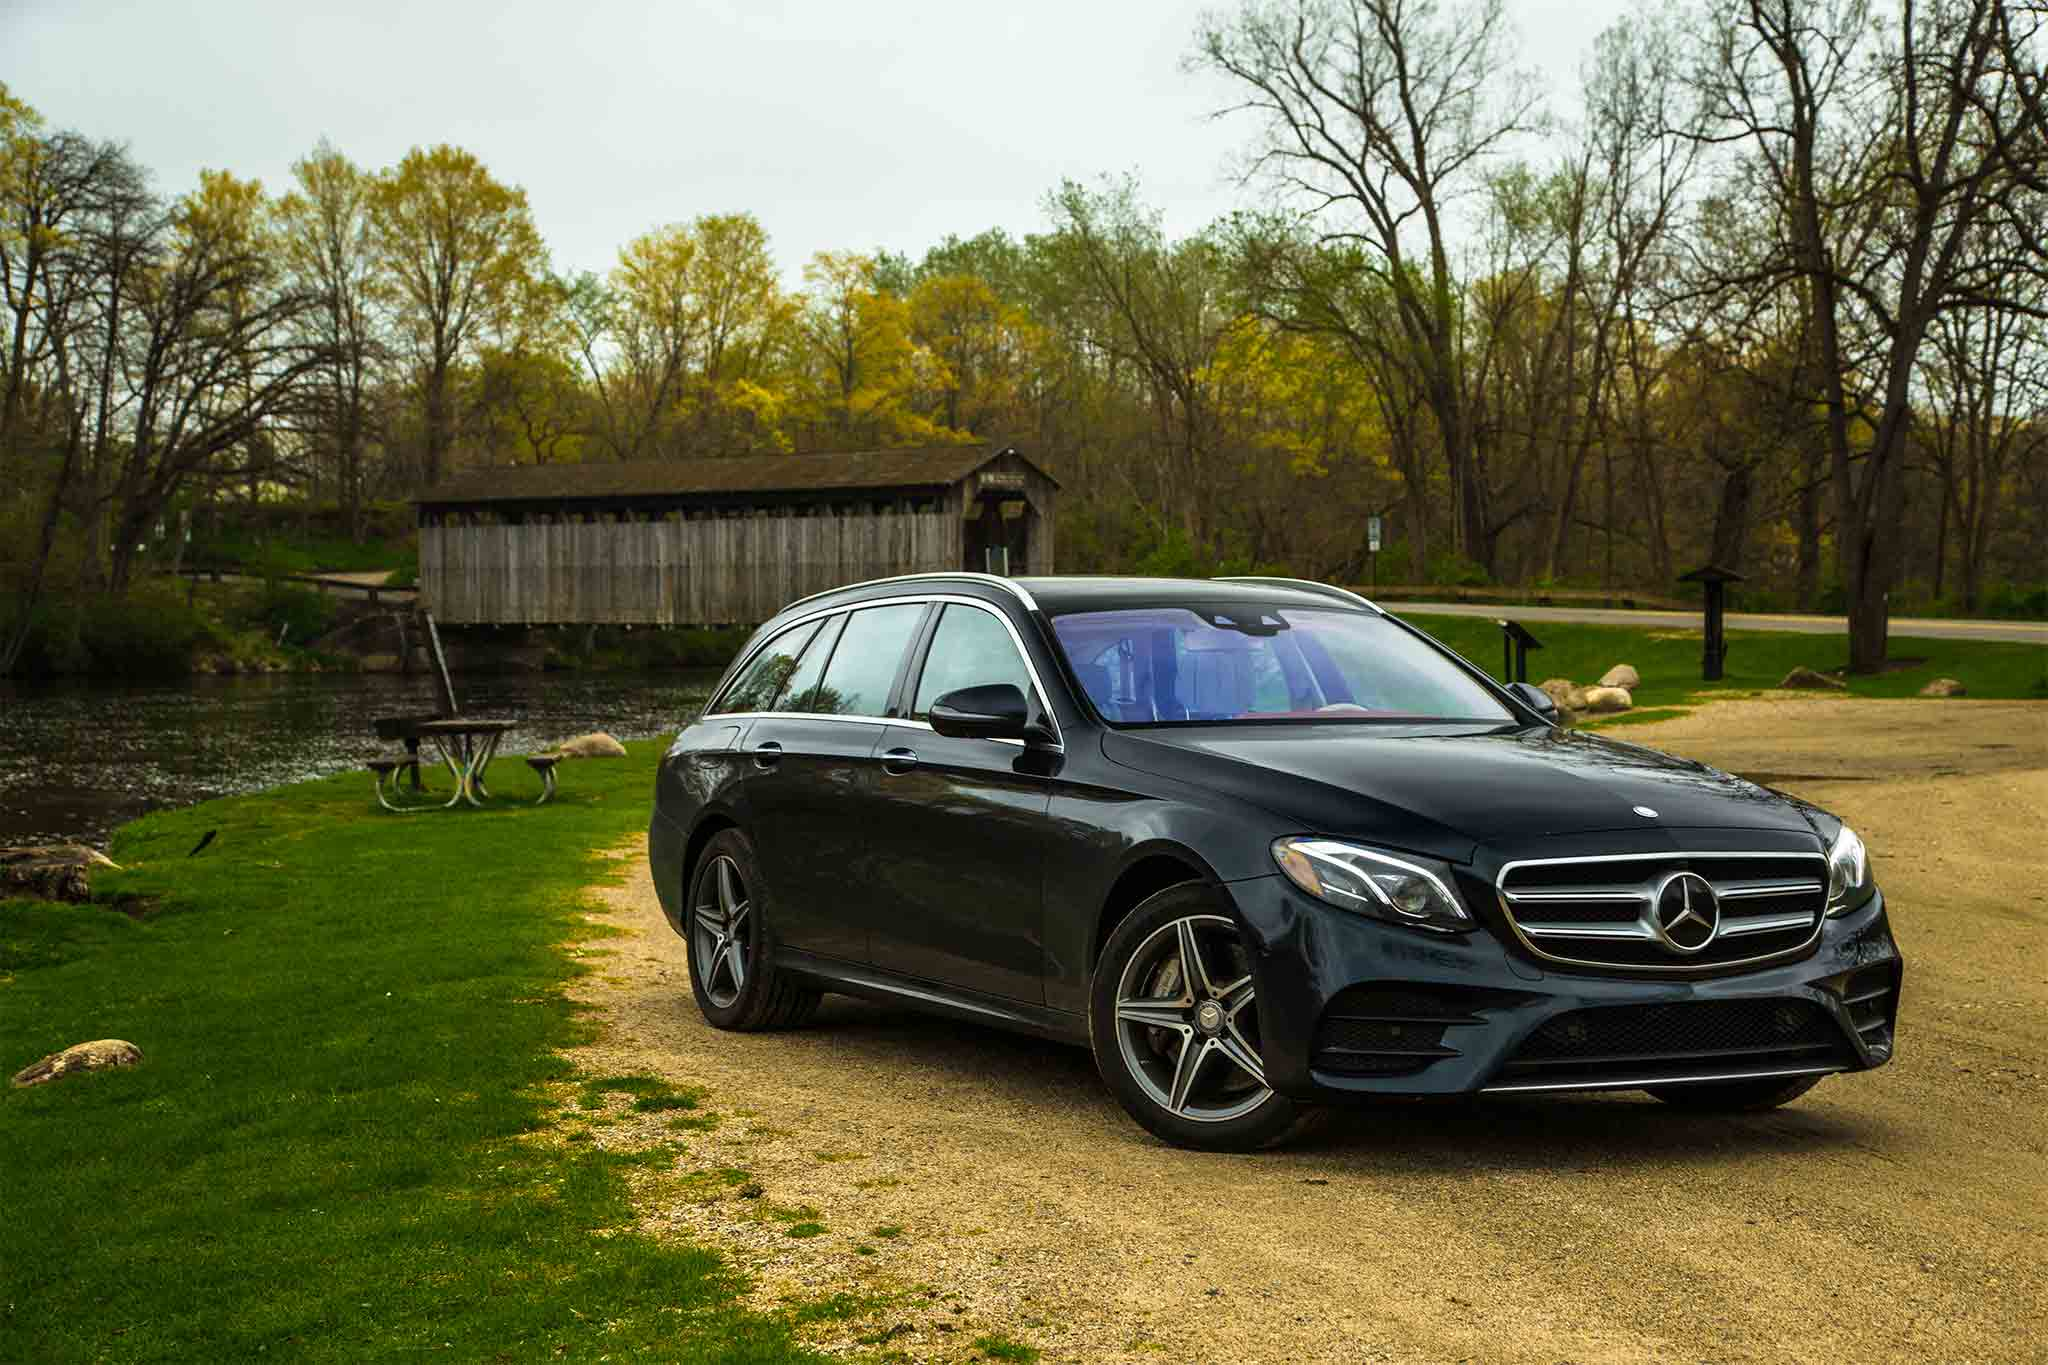 2017 mercedes ben e400 4matic wagon one week review for Mercedes benz e400 wagon